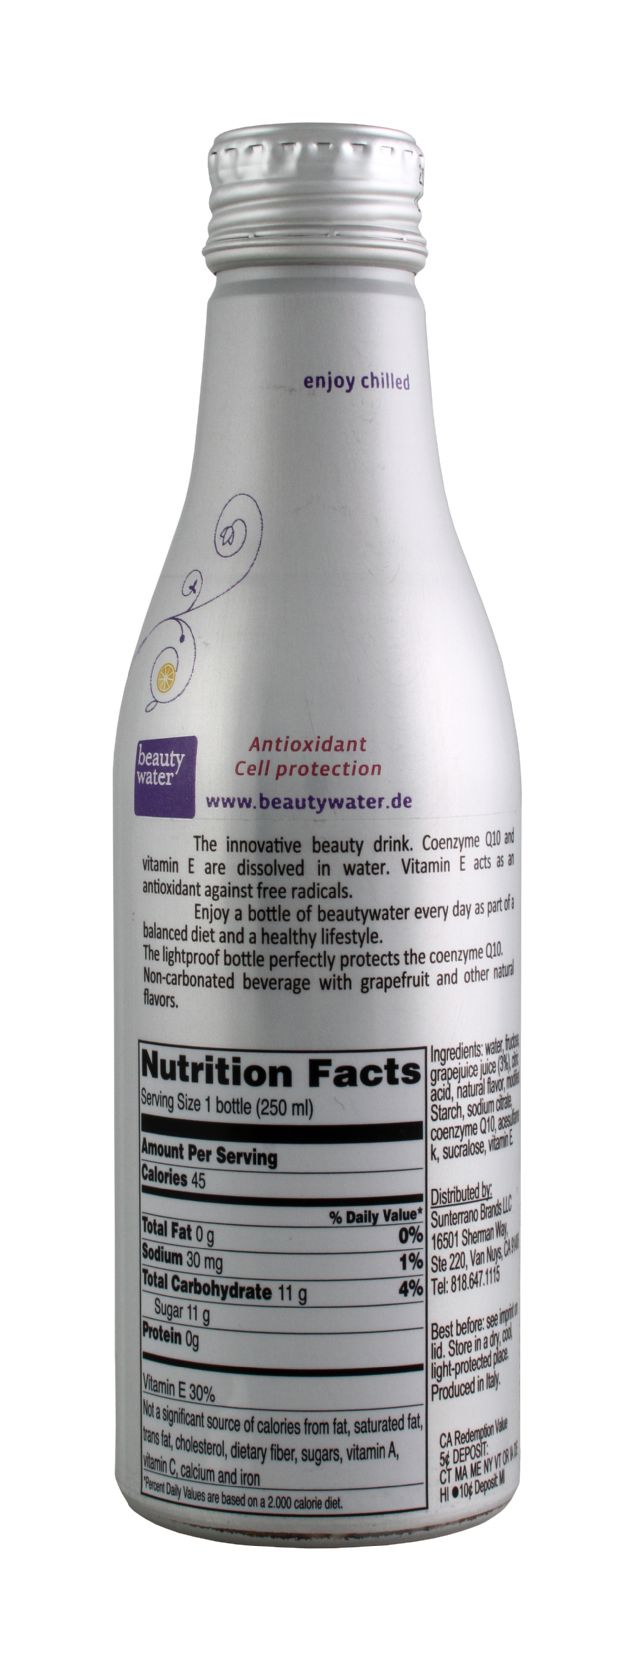 Beauty Water: BeautyWater Q10 Facts